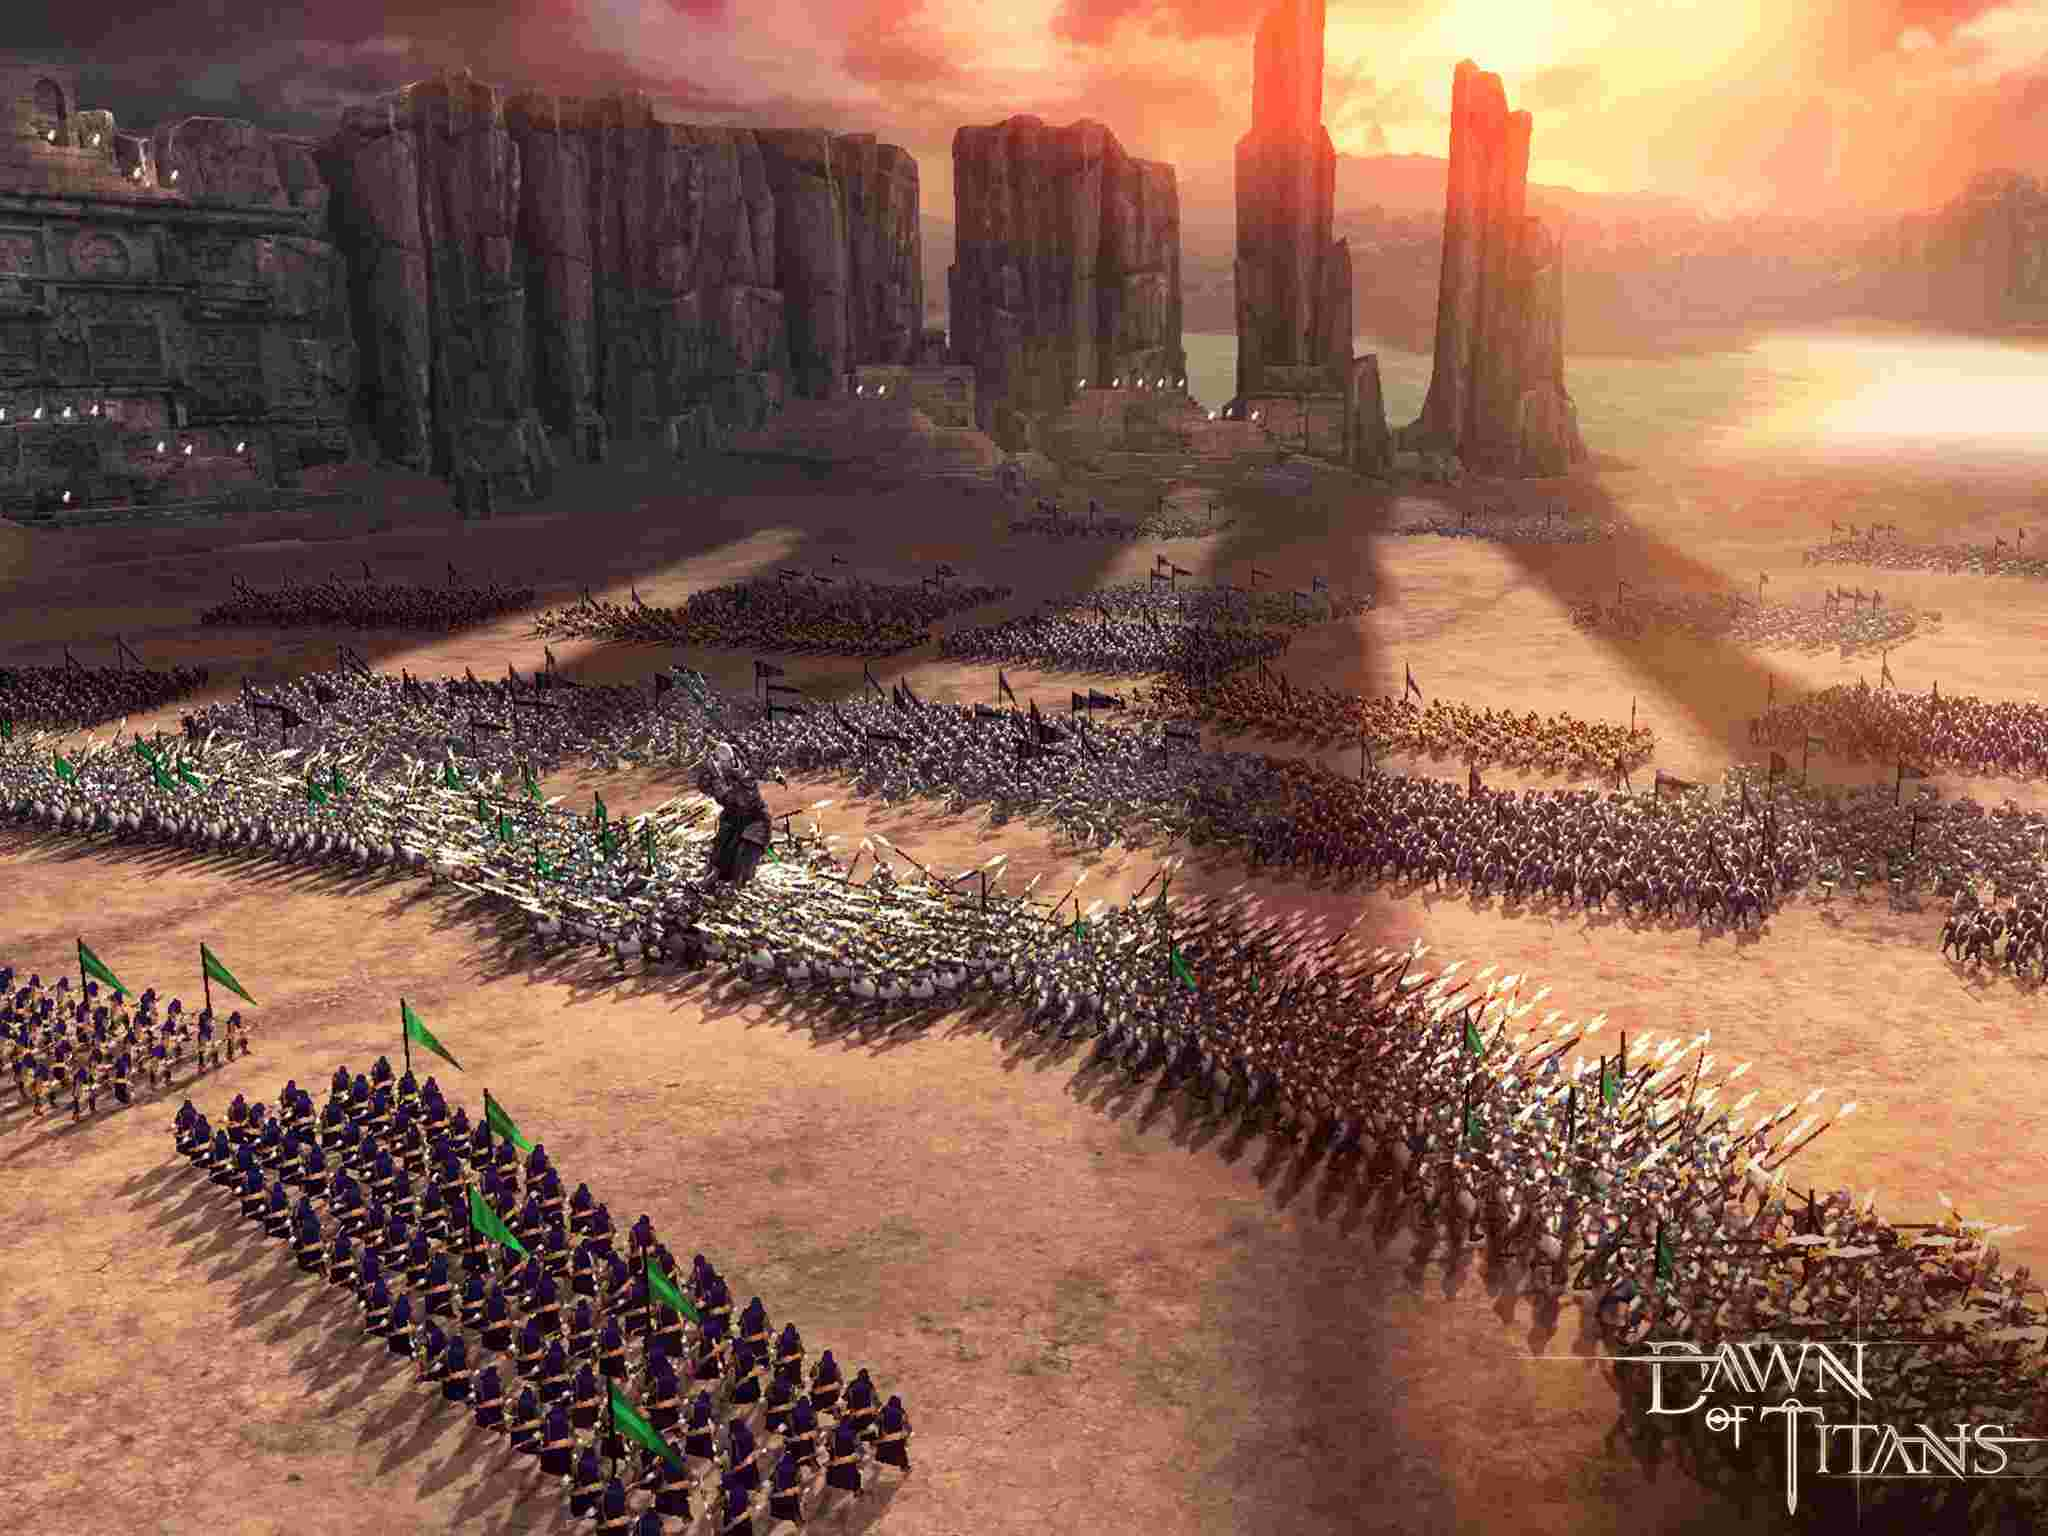 dawn-of-titans_battle-scene1